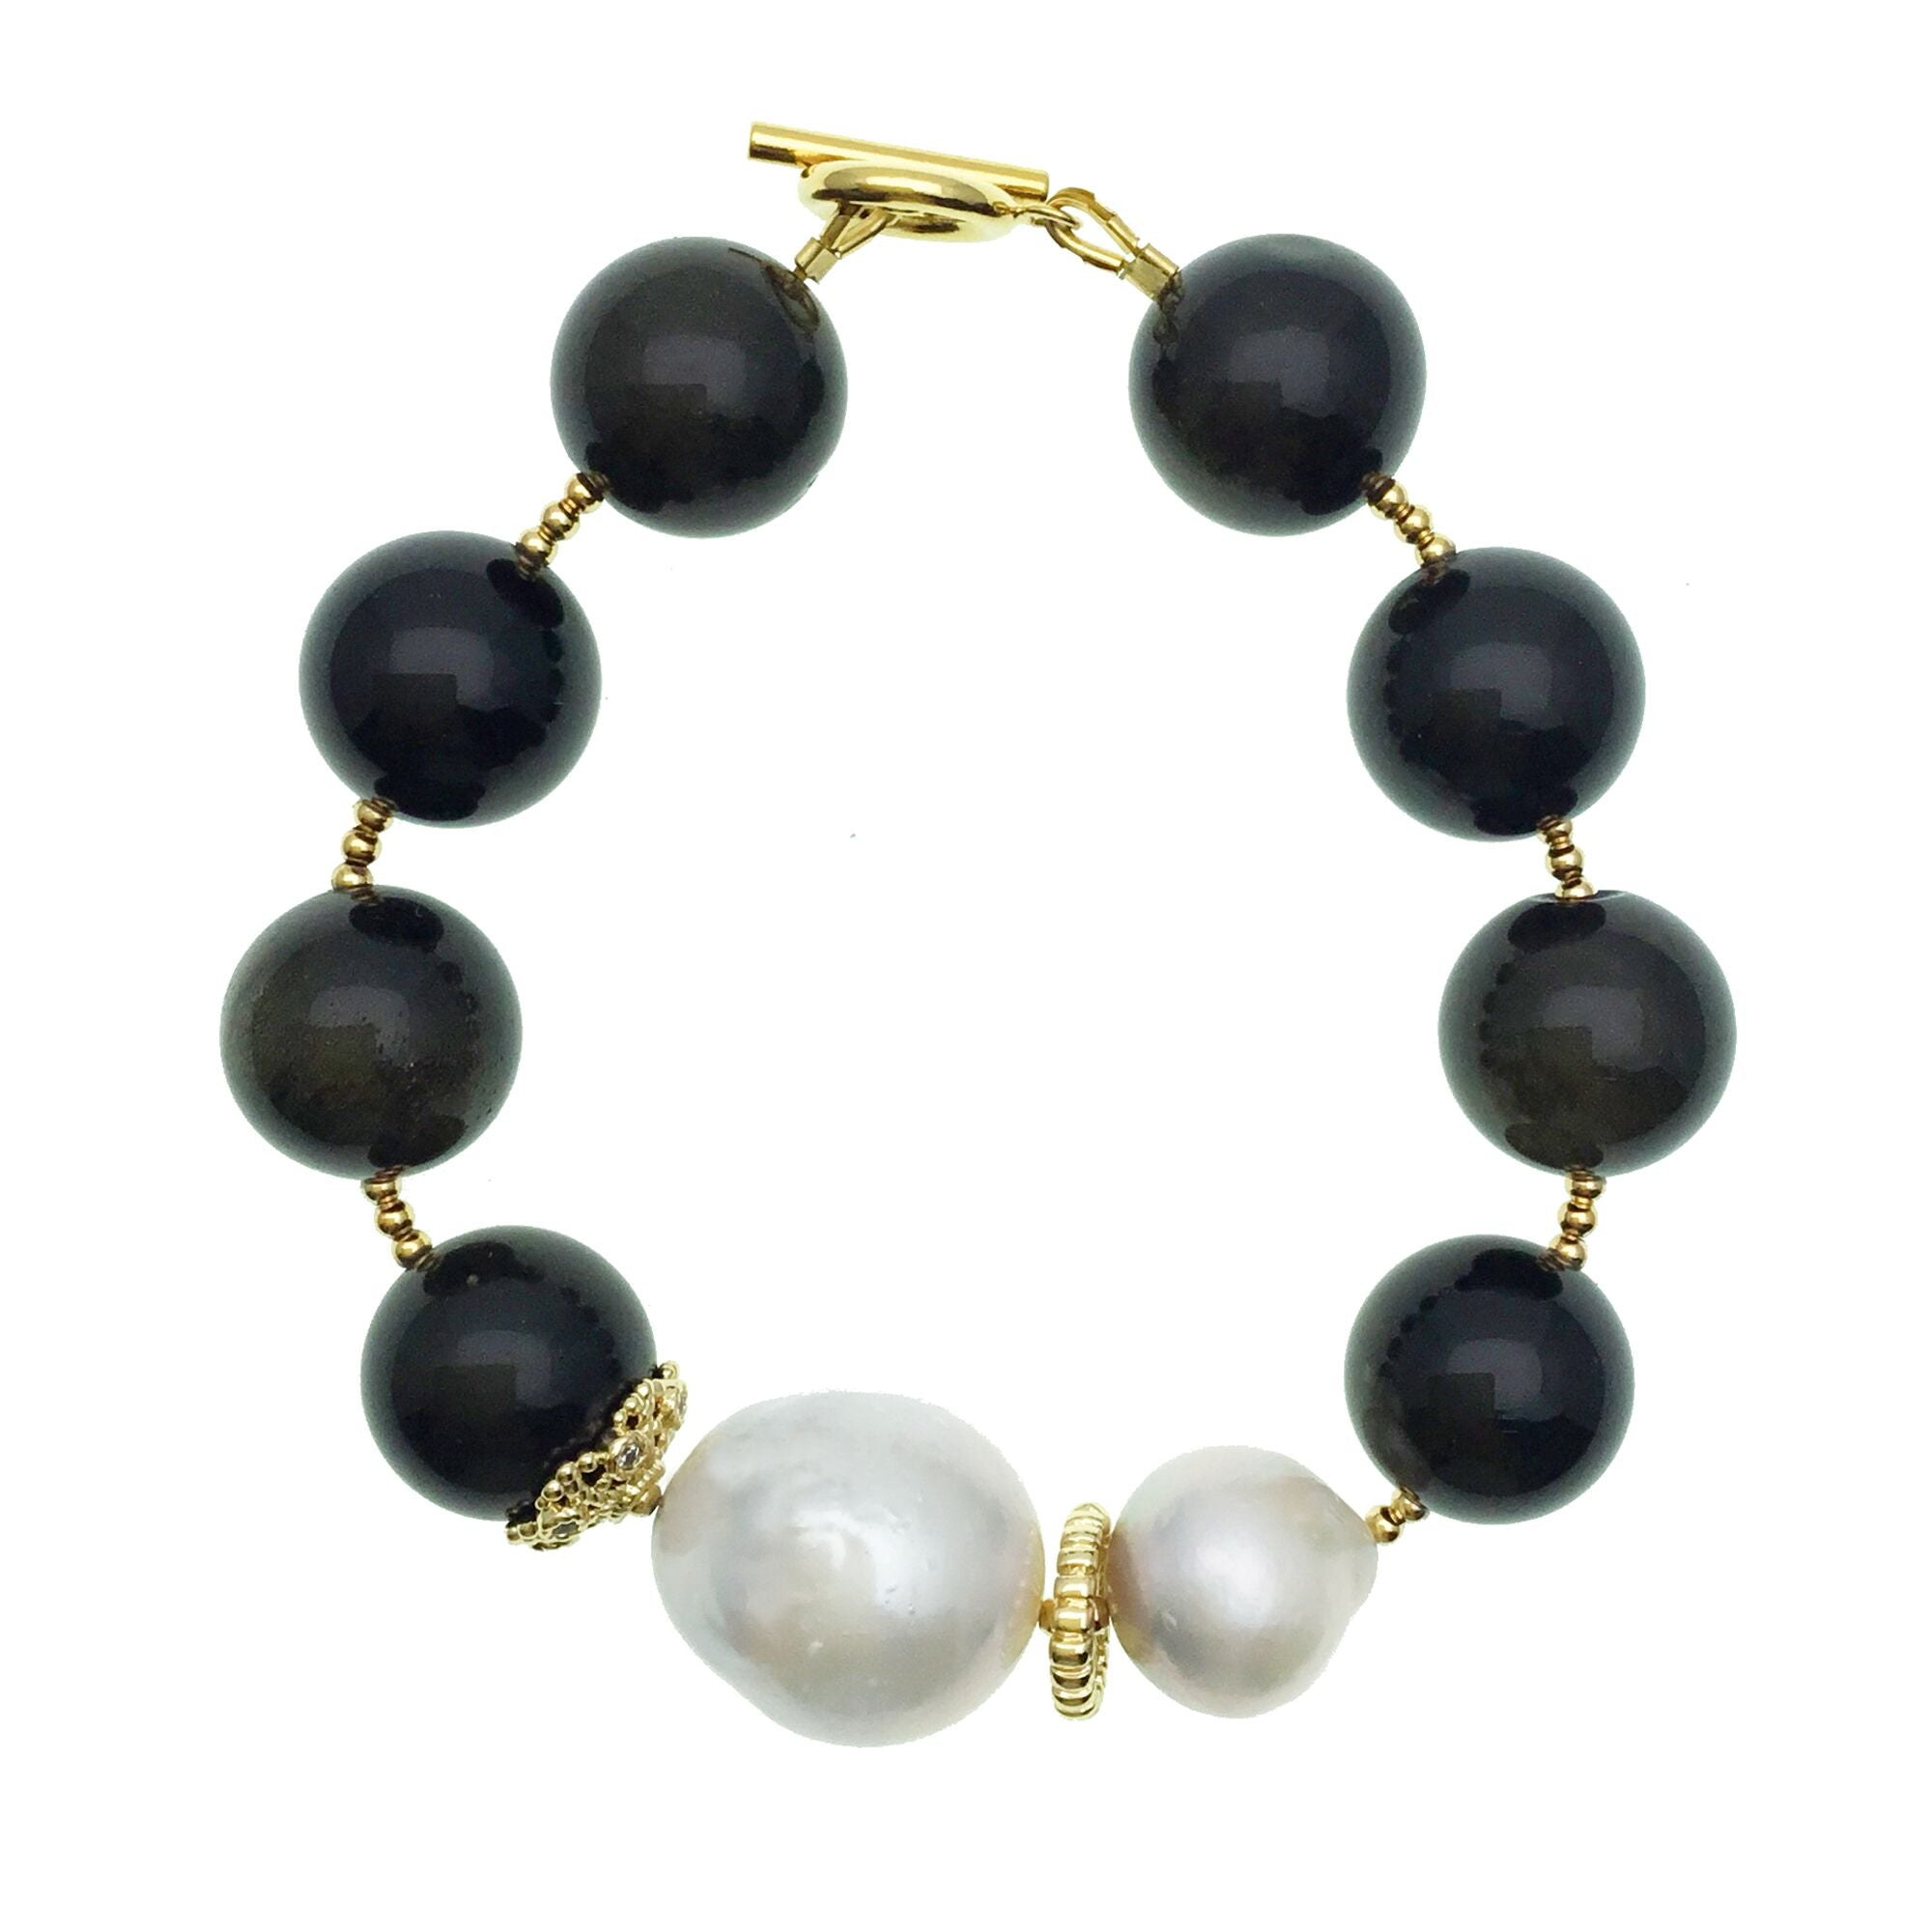 Baroque Pearl and Black Tiger Eye Bracelet - Shopidpearl